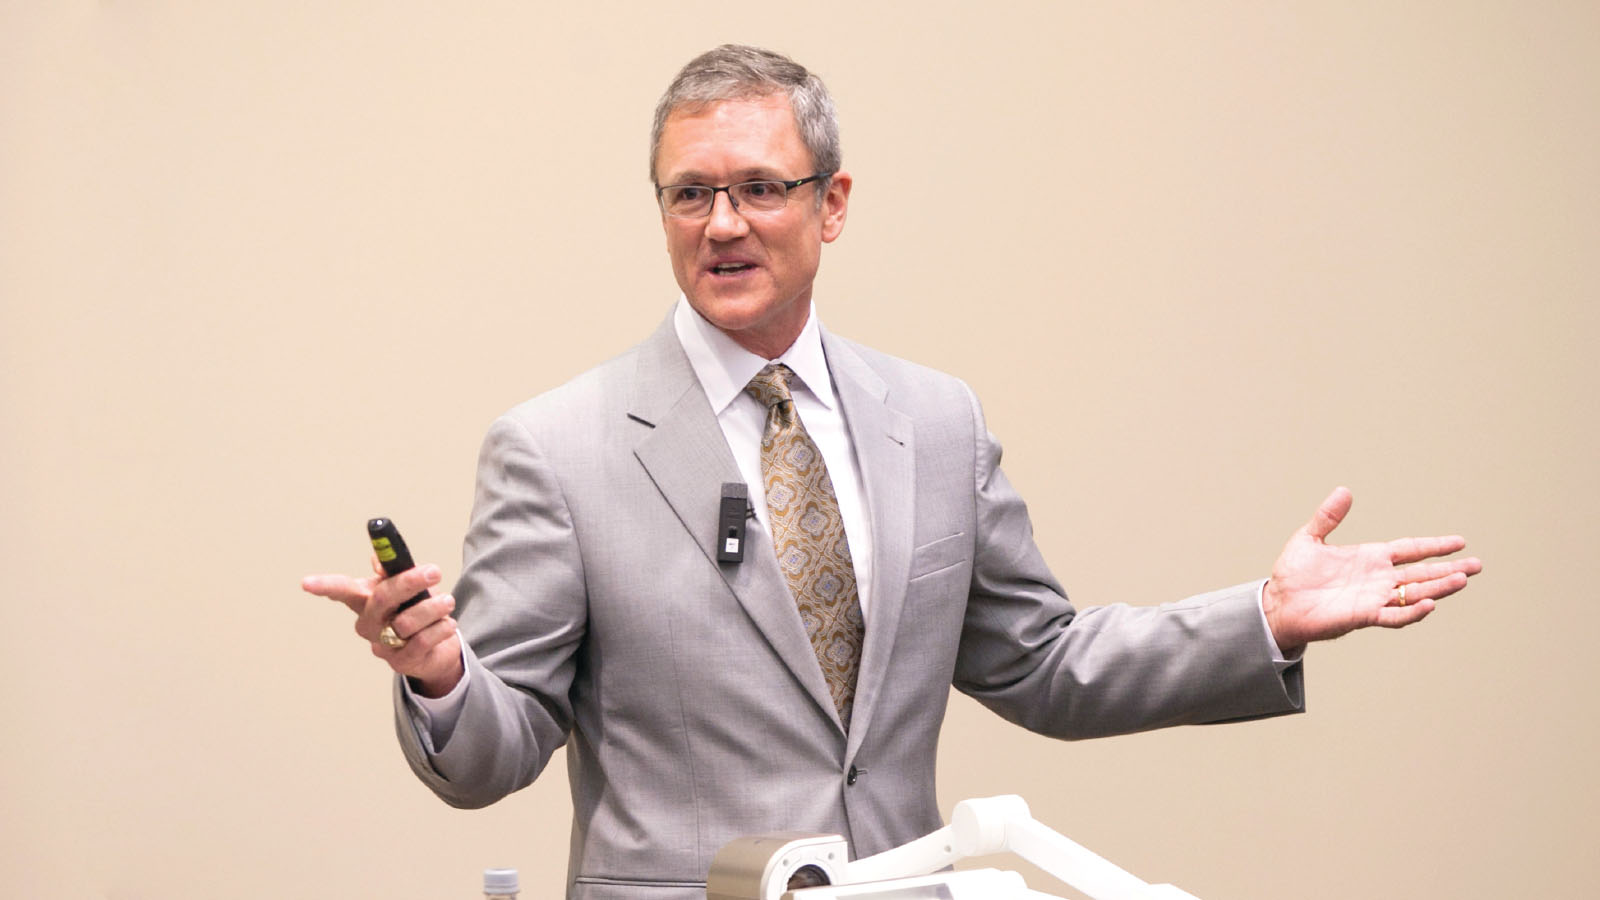 A. Dale Whittaker joins UCF as provost and vice president for academic affairs